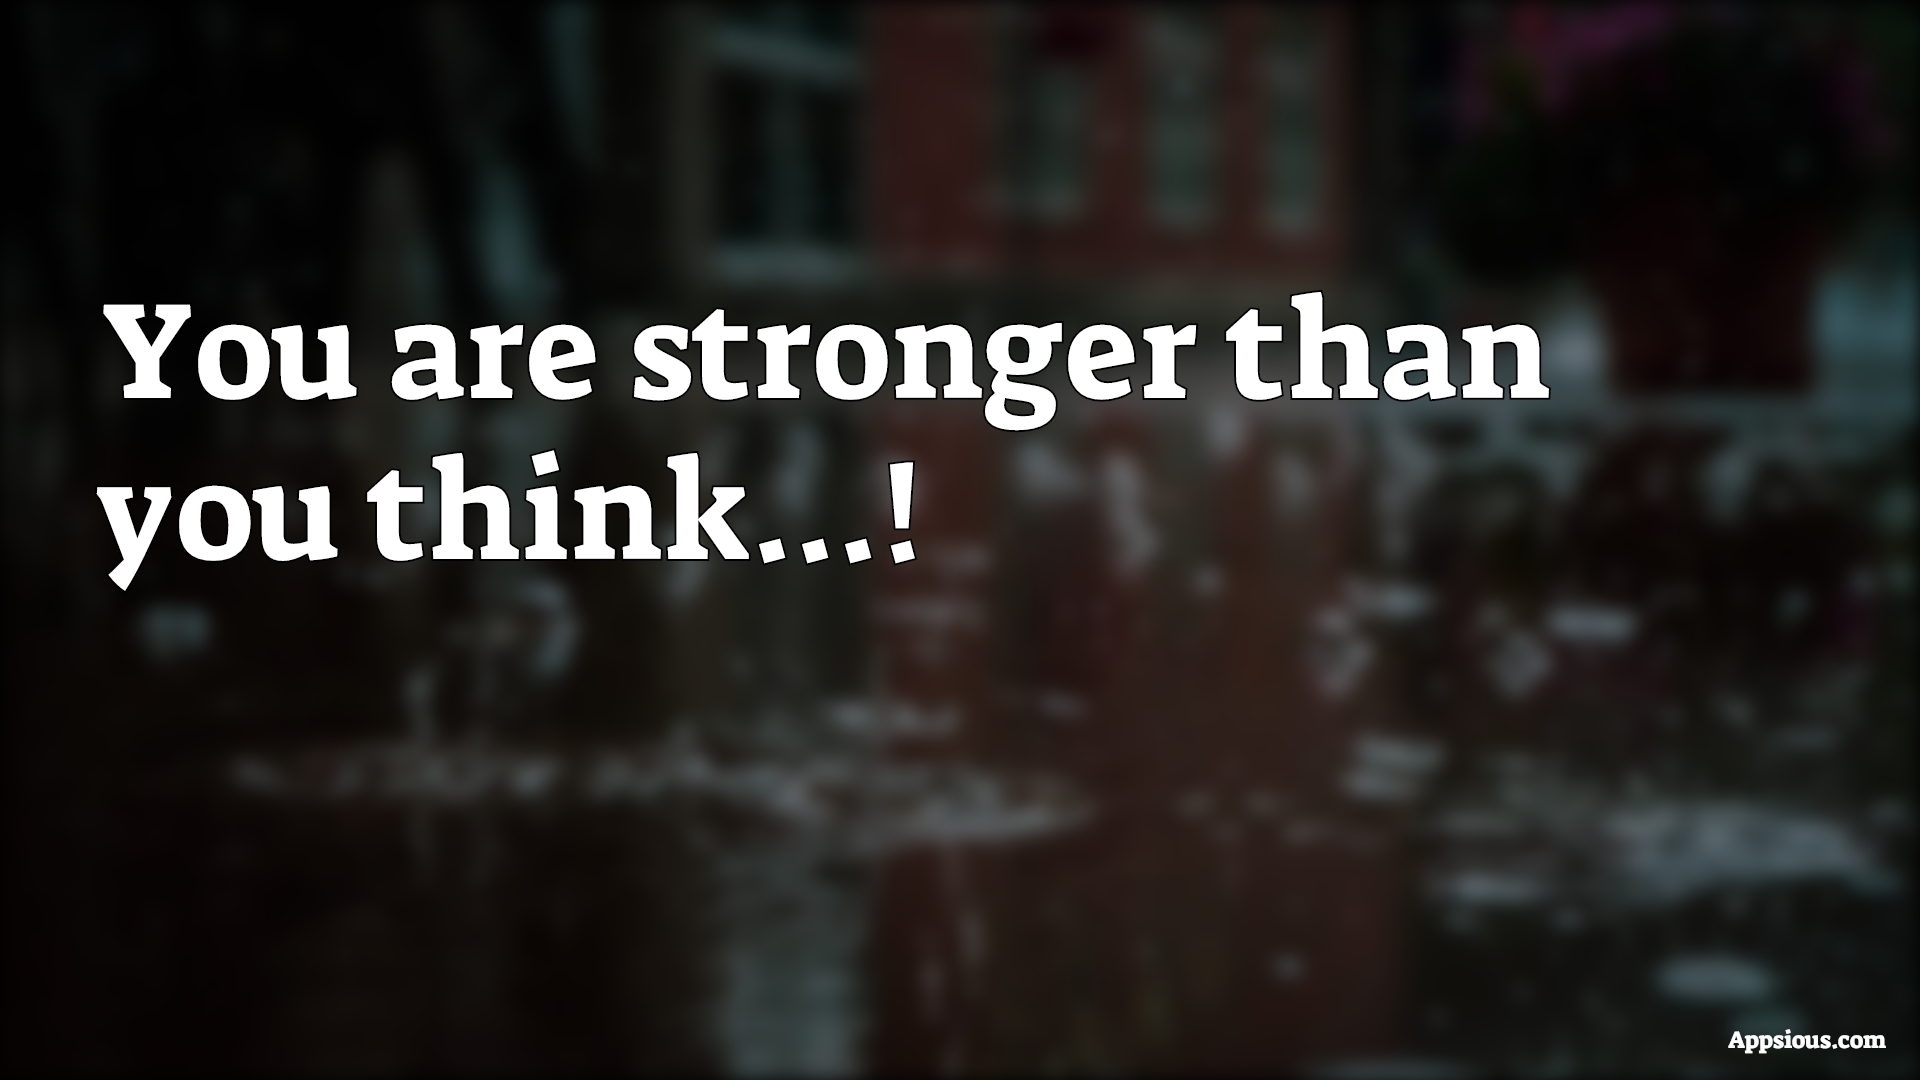 You are stronger than you think...!